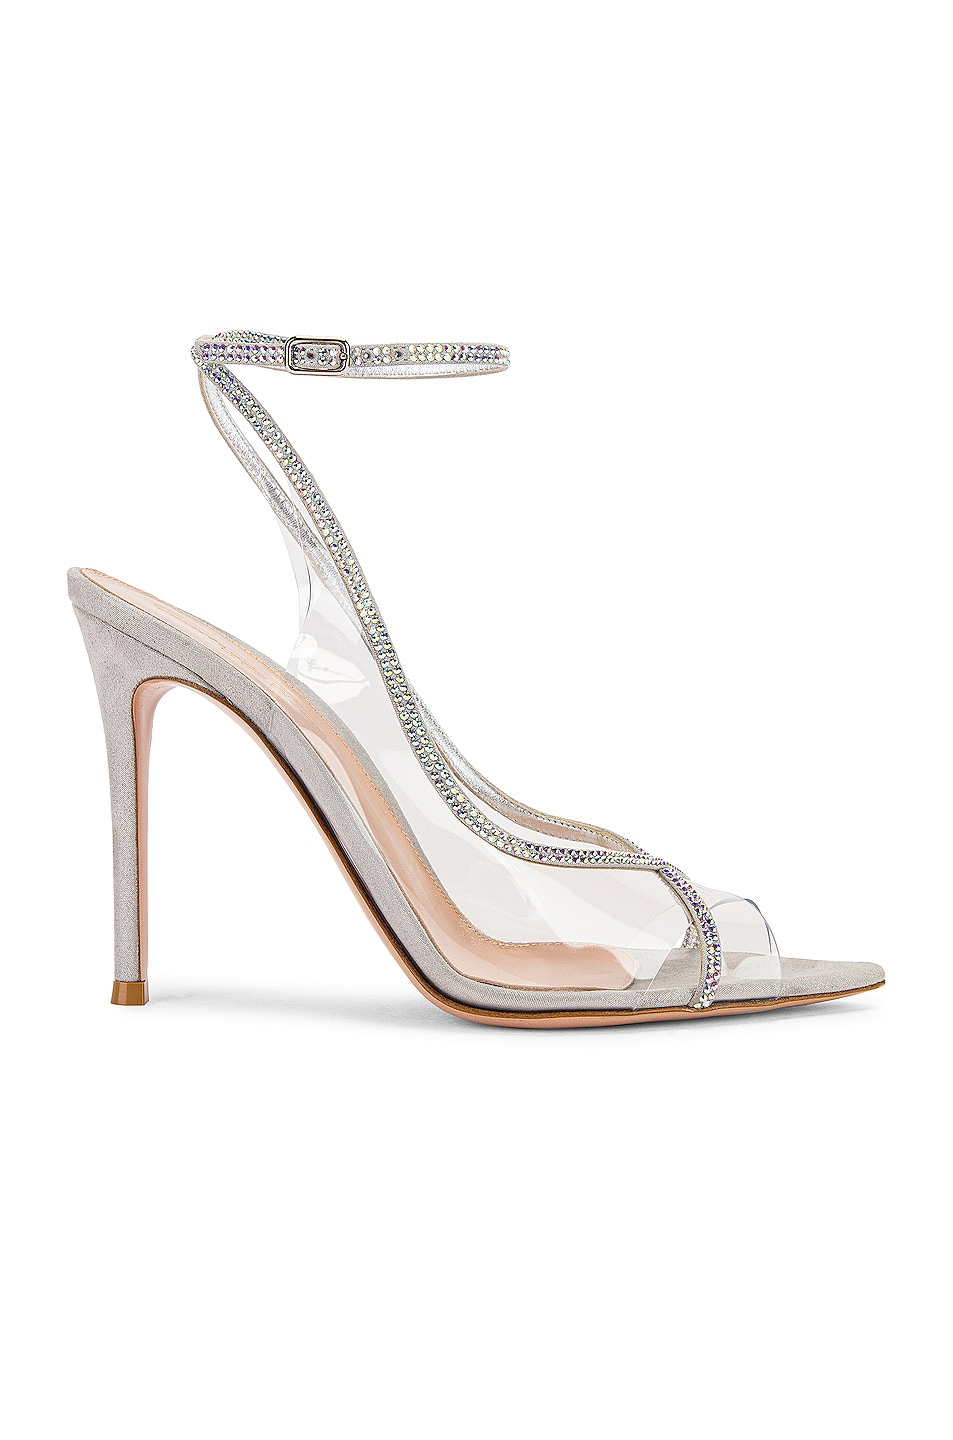 Image 1 of Gianvito Rossi Ankle Strap Heels in Transparent & Silver